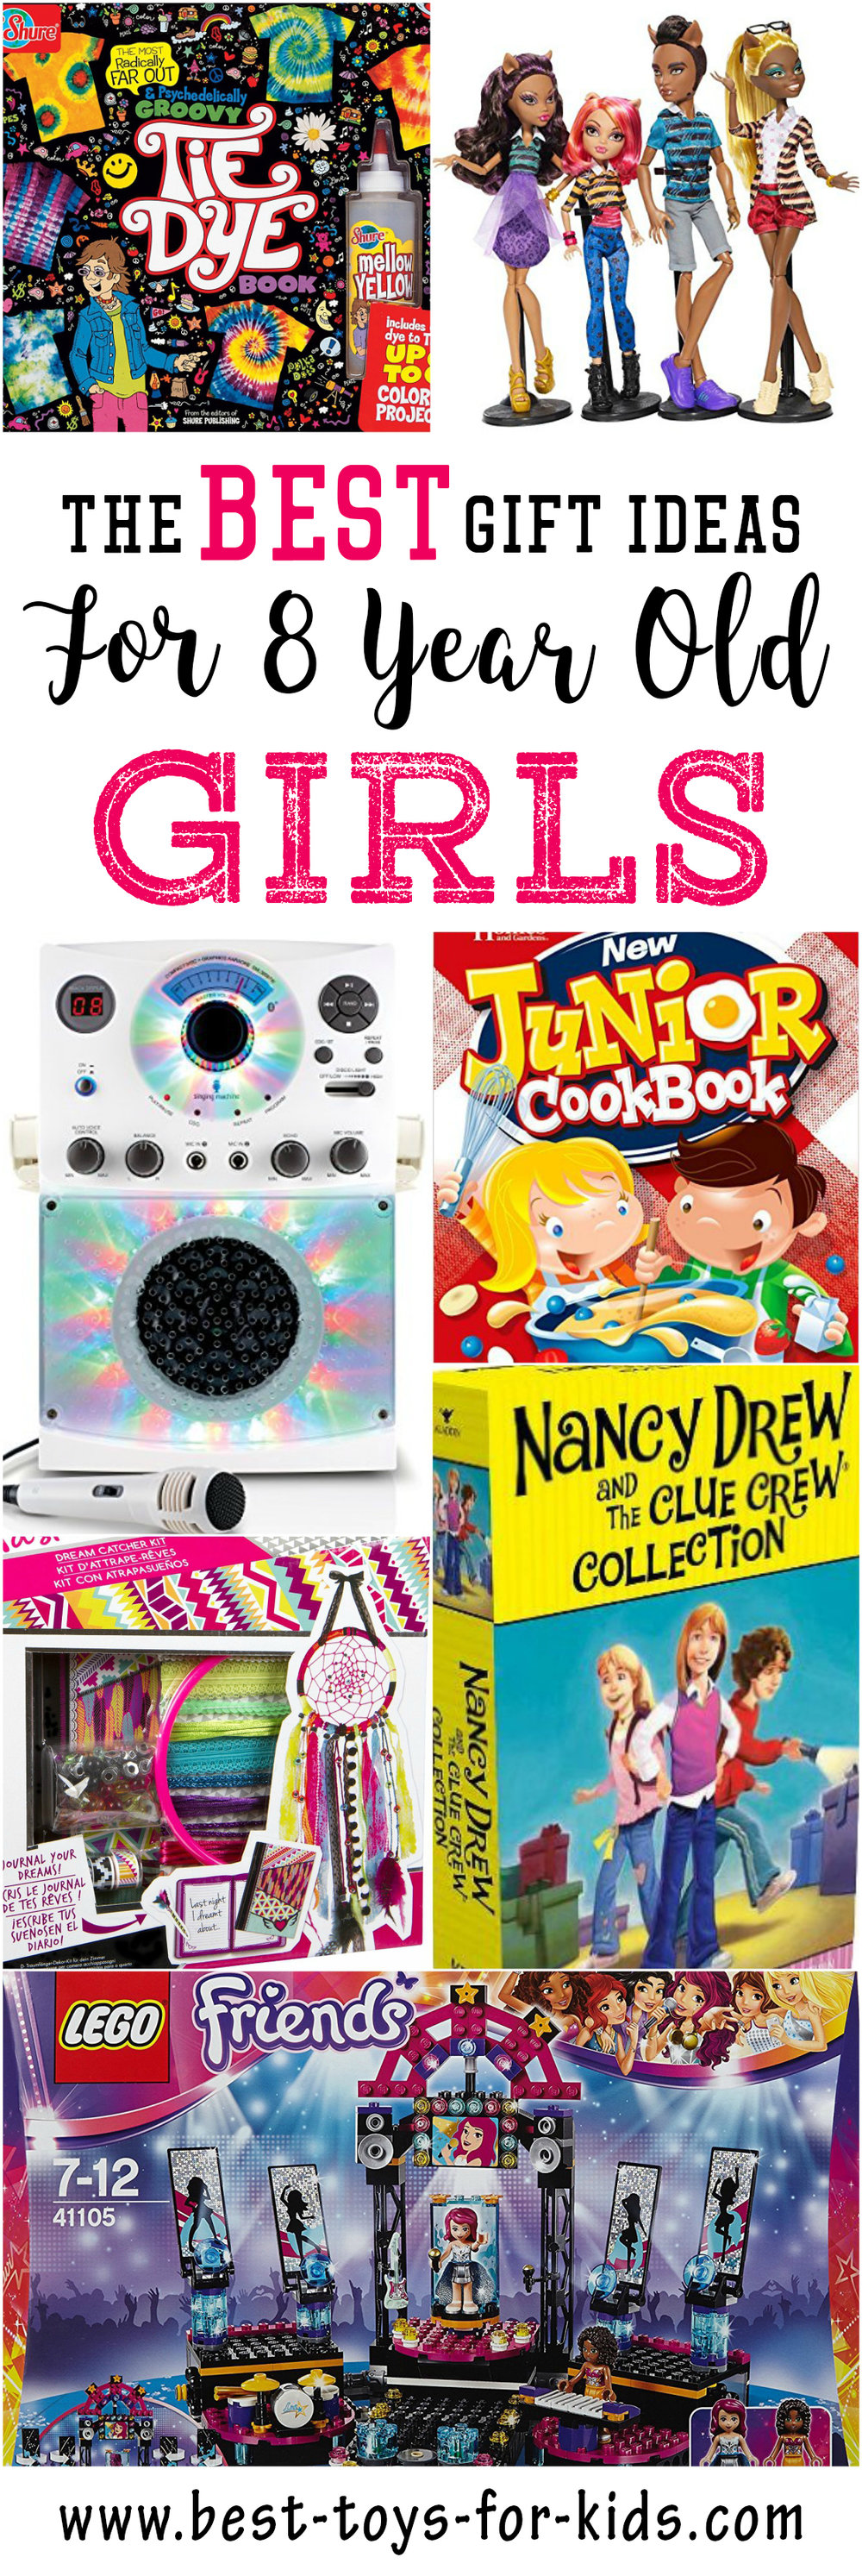 Best Gift Ideas for 8 Year Old Girls — Best Toys For Kids